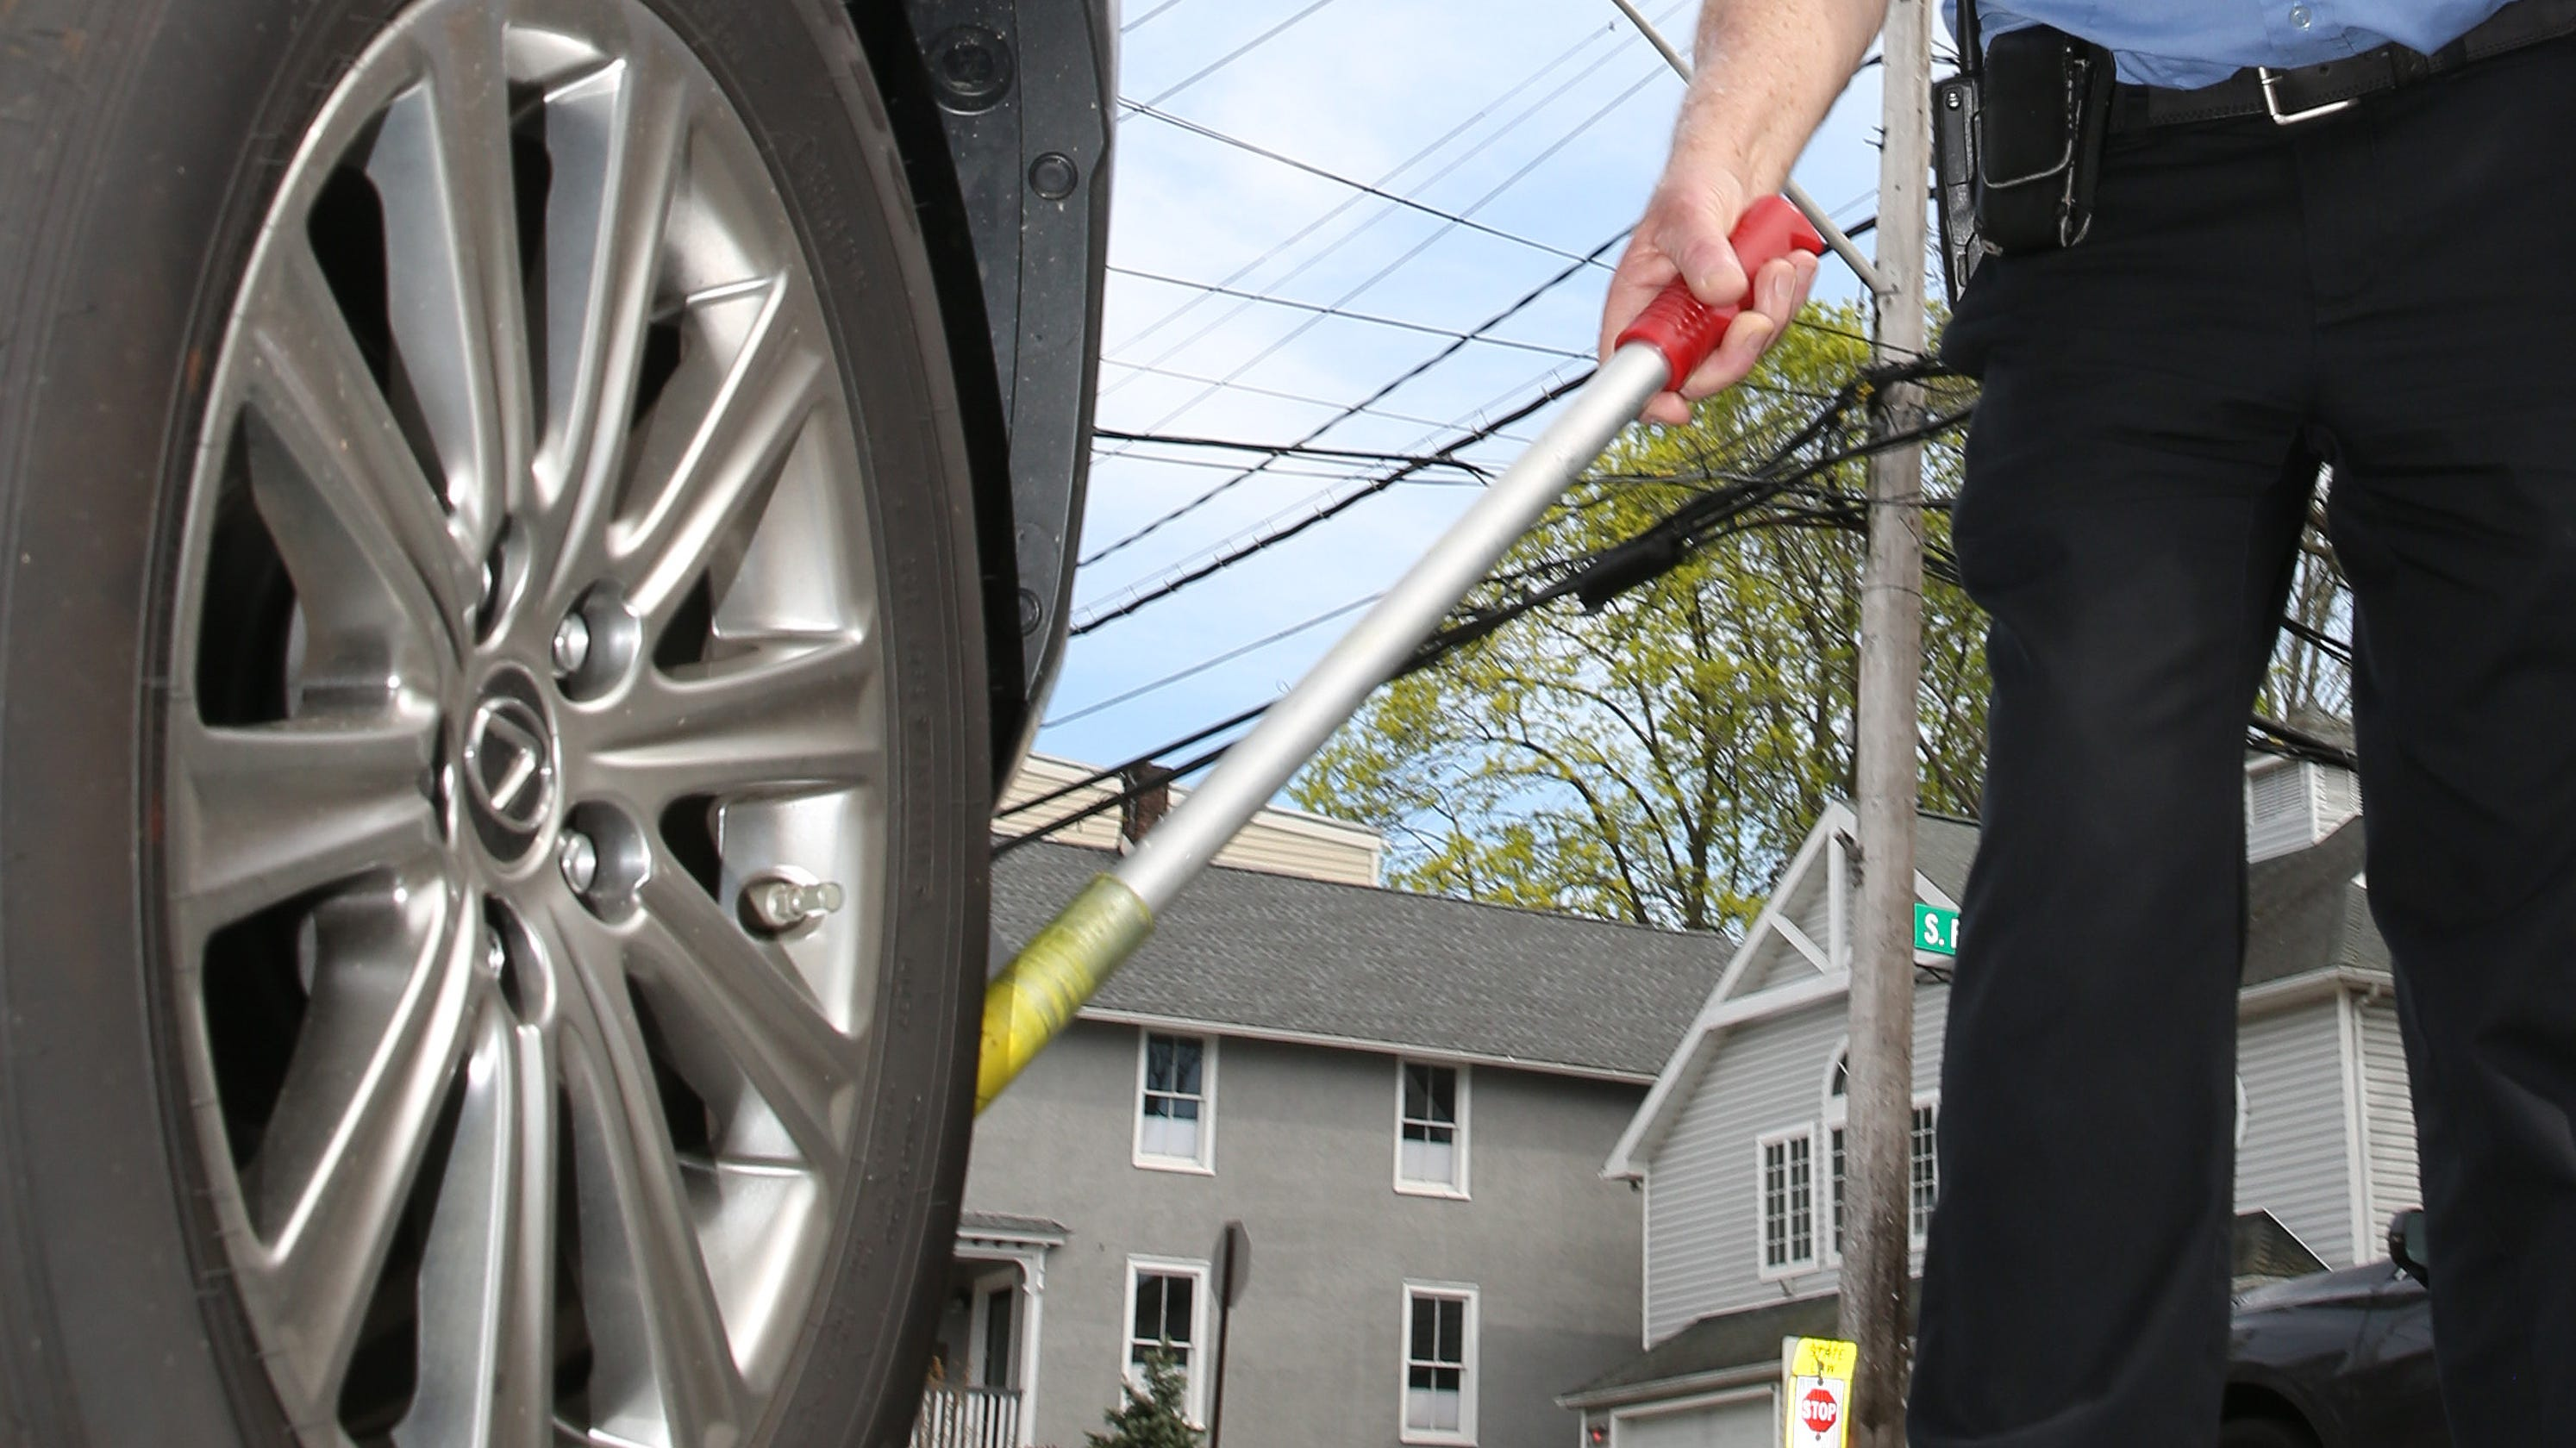 Parking officials can't chalk tires, court rules